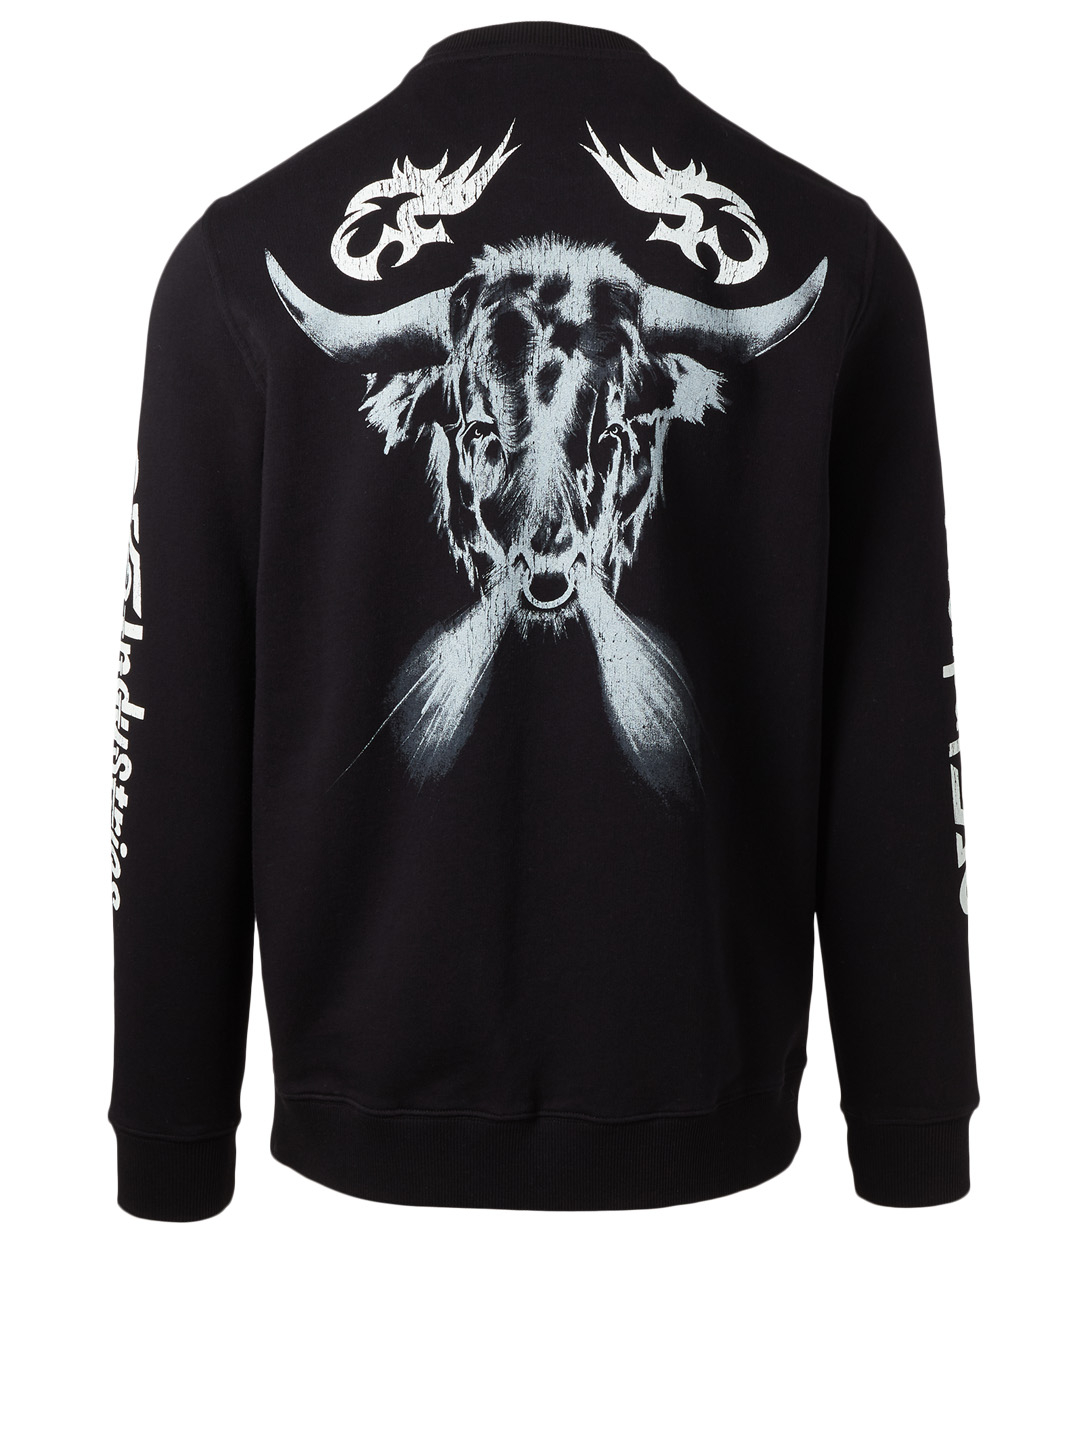 GIVENCHY Taurus Sweatshirt Men's Black